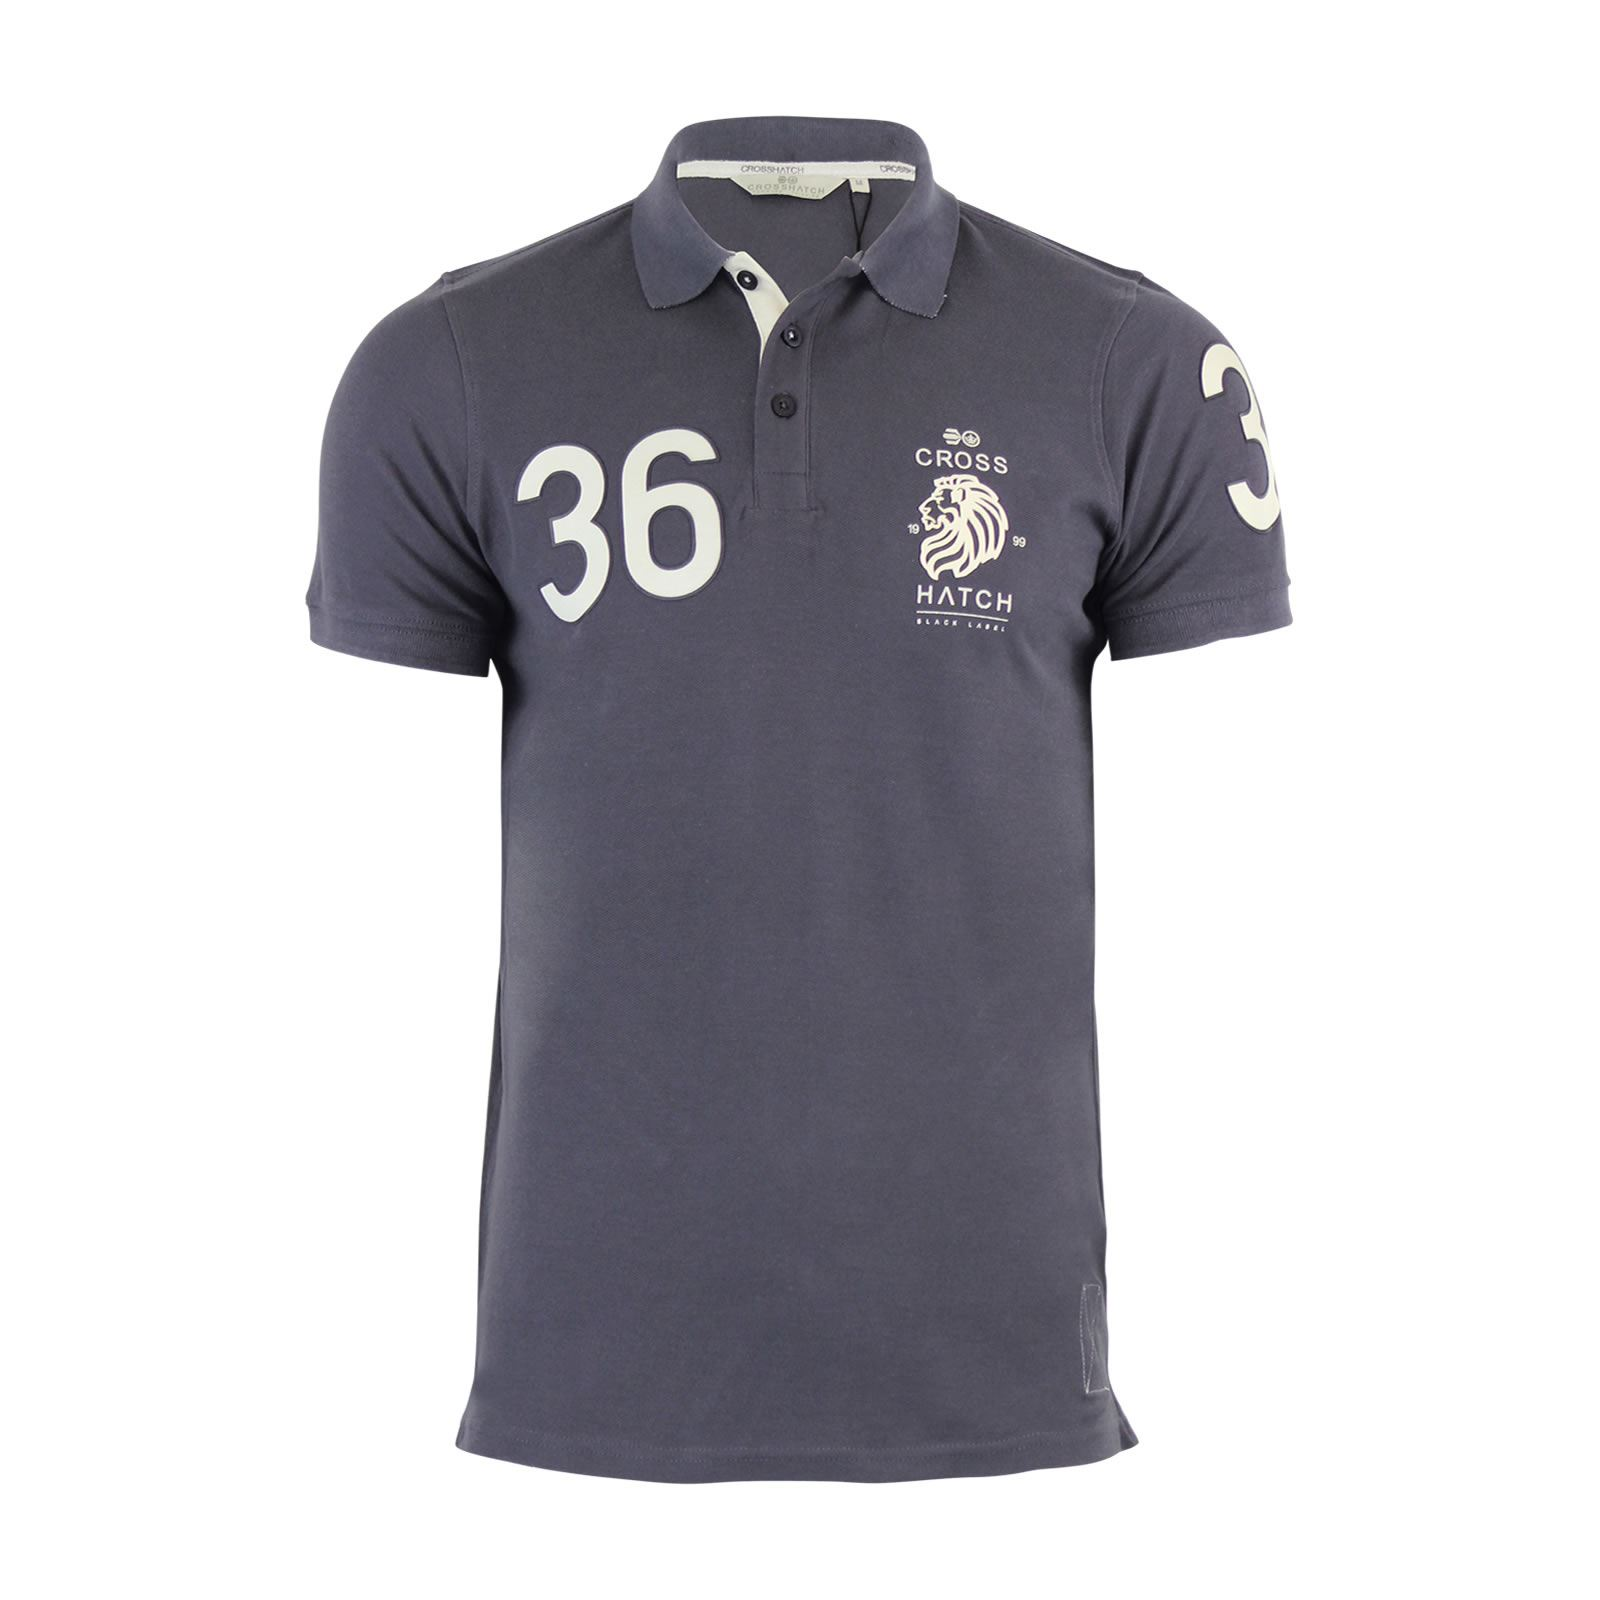 Crosshatch-Mens-Polo-T-Shirt-Pique-Polo-Cotton-Collared-Short-Sleeve-T-Shirt thumbnail 25